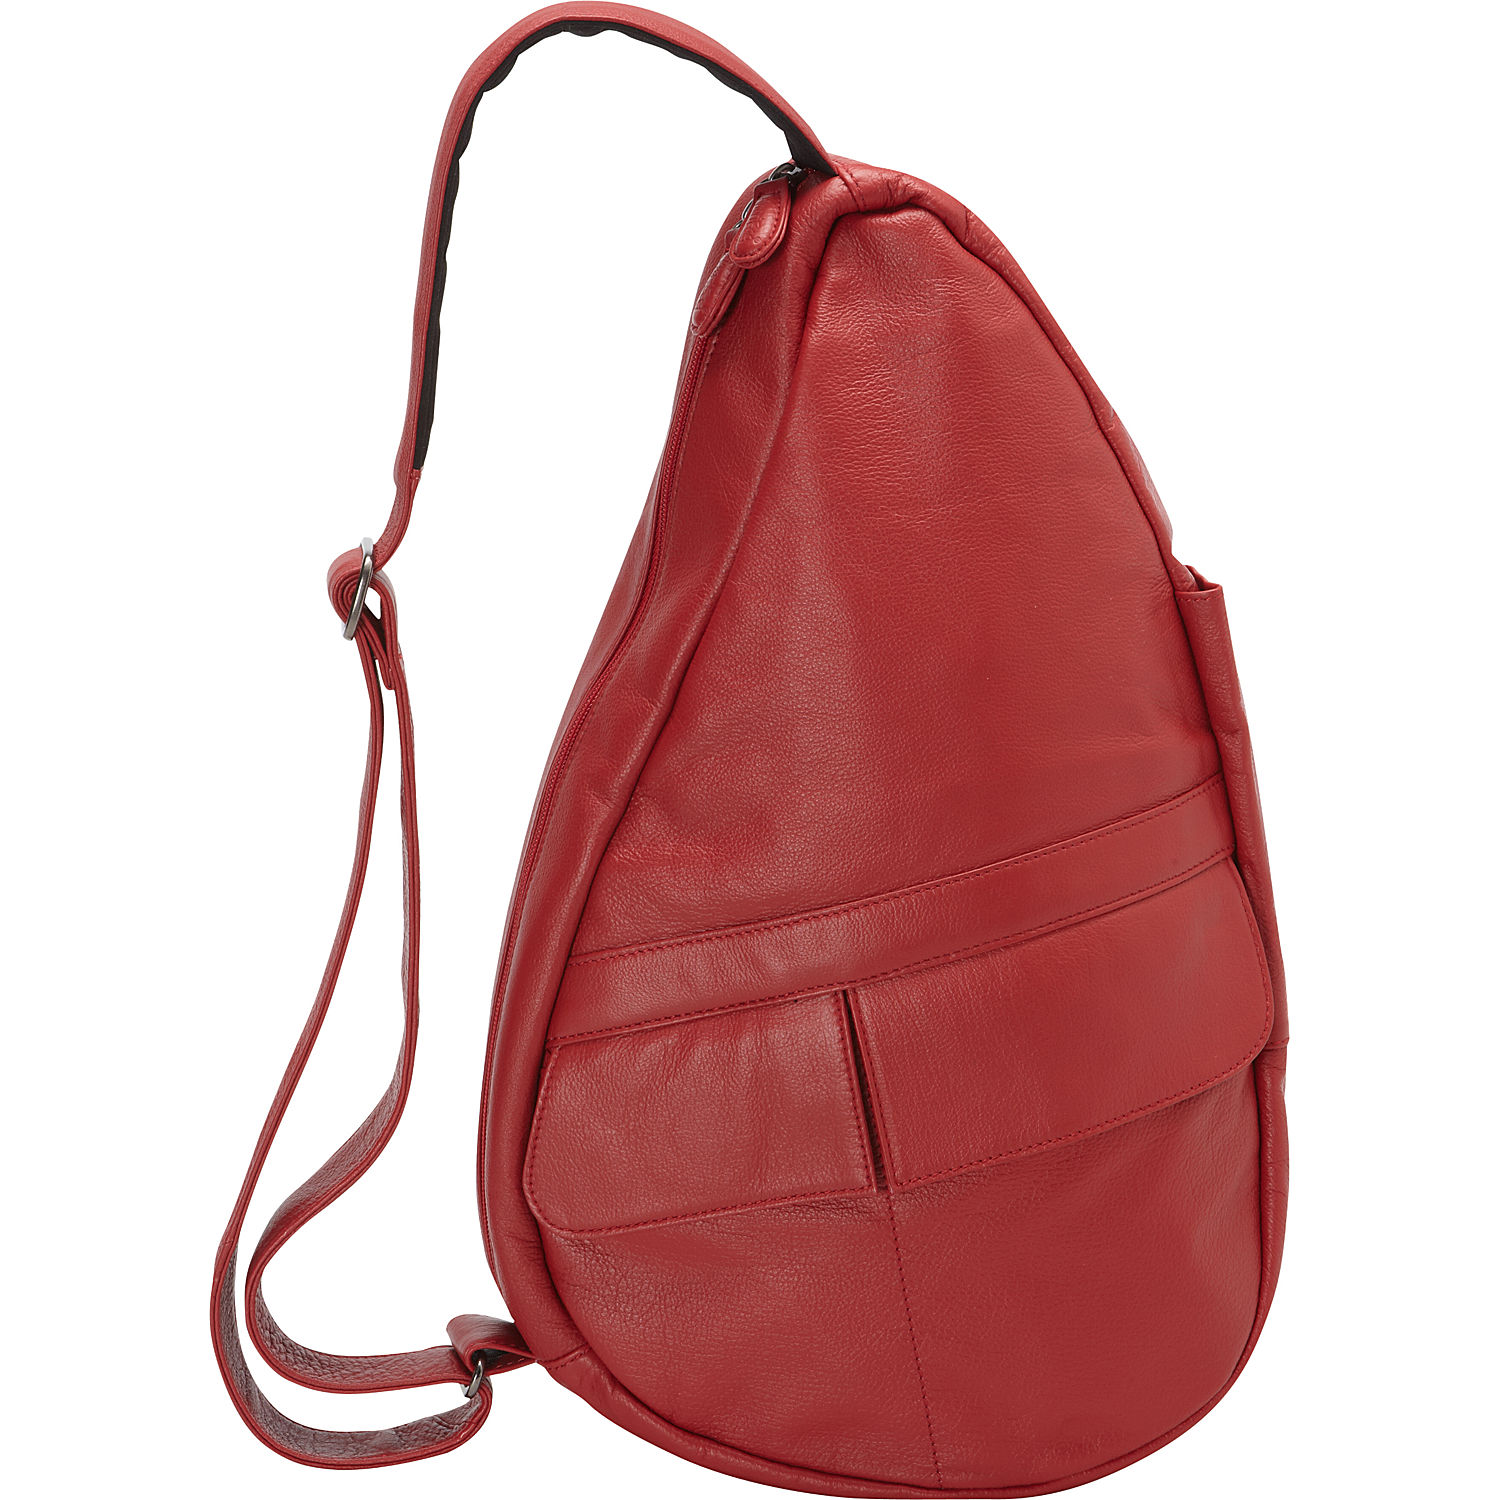 Back Purse : AmeriBag Healthy Back Bag evo Leather Small - eBags.com